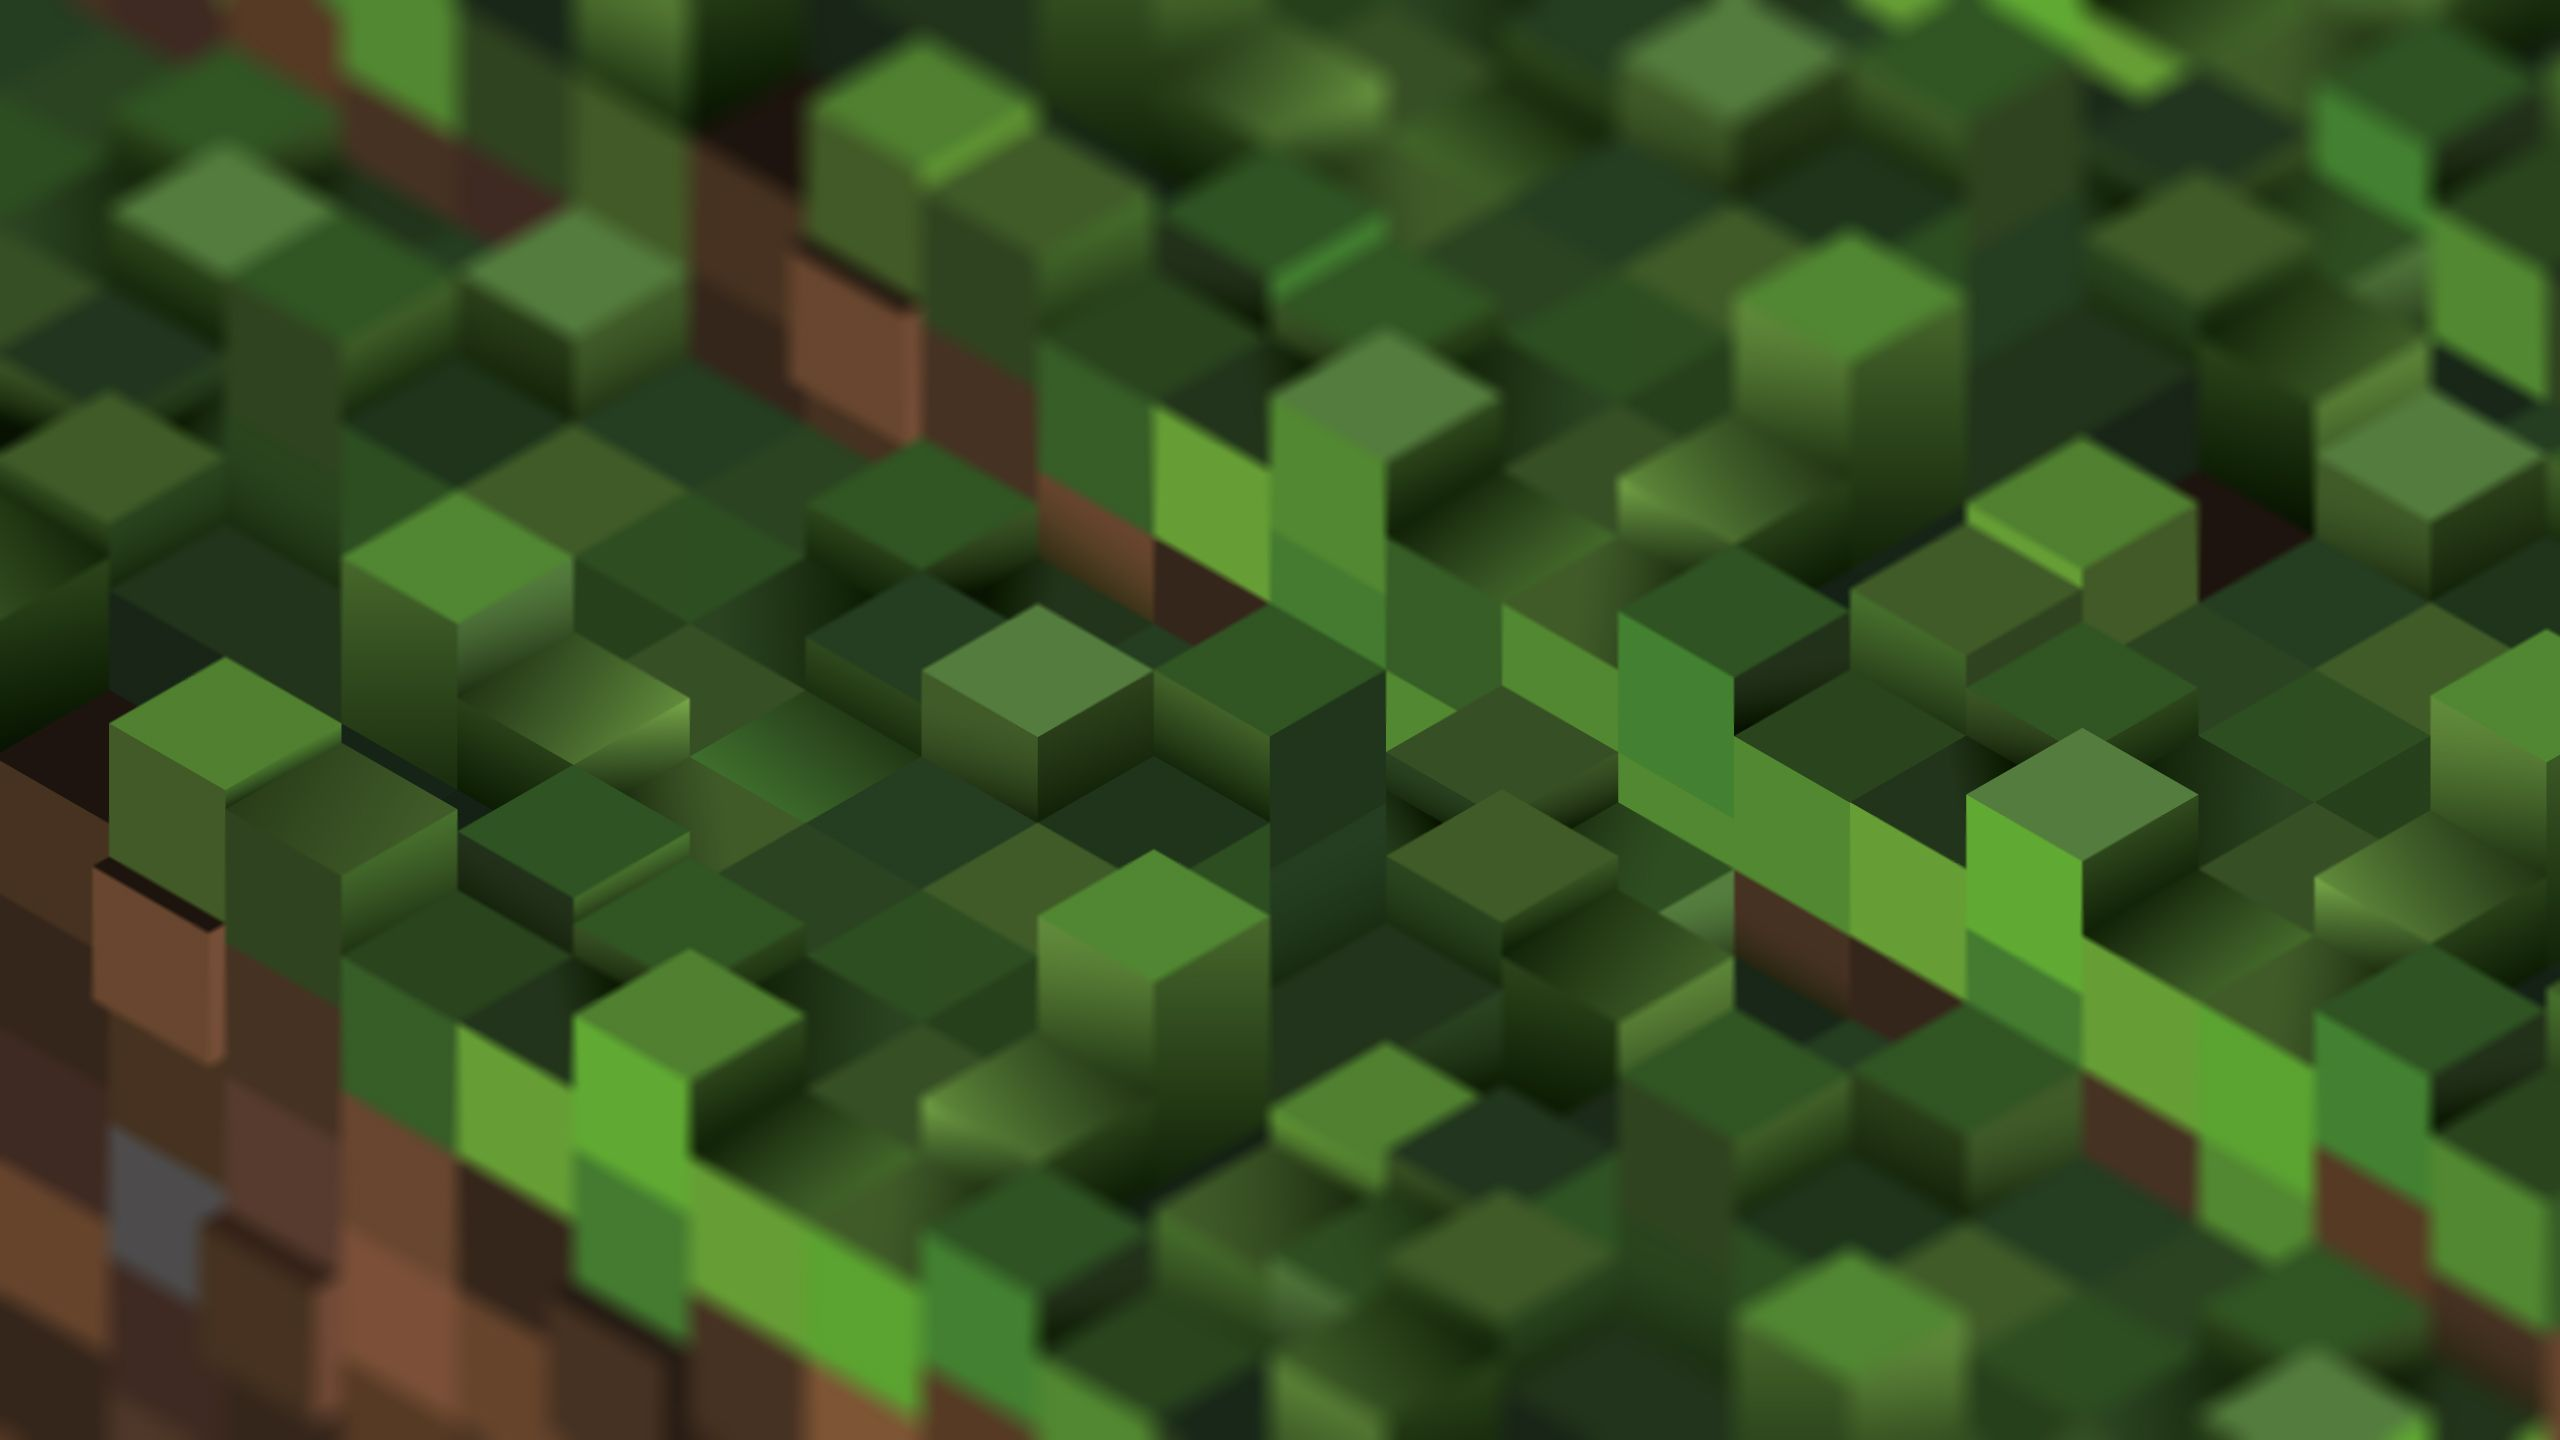 Must see Wallpaper Minecraft Mac - 22bc341498a29fb055a75b203a1d4860  Perfect Image Reference_45895.jpg